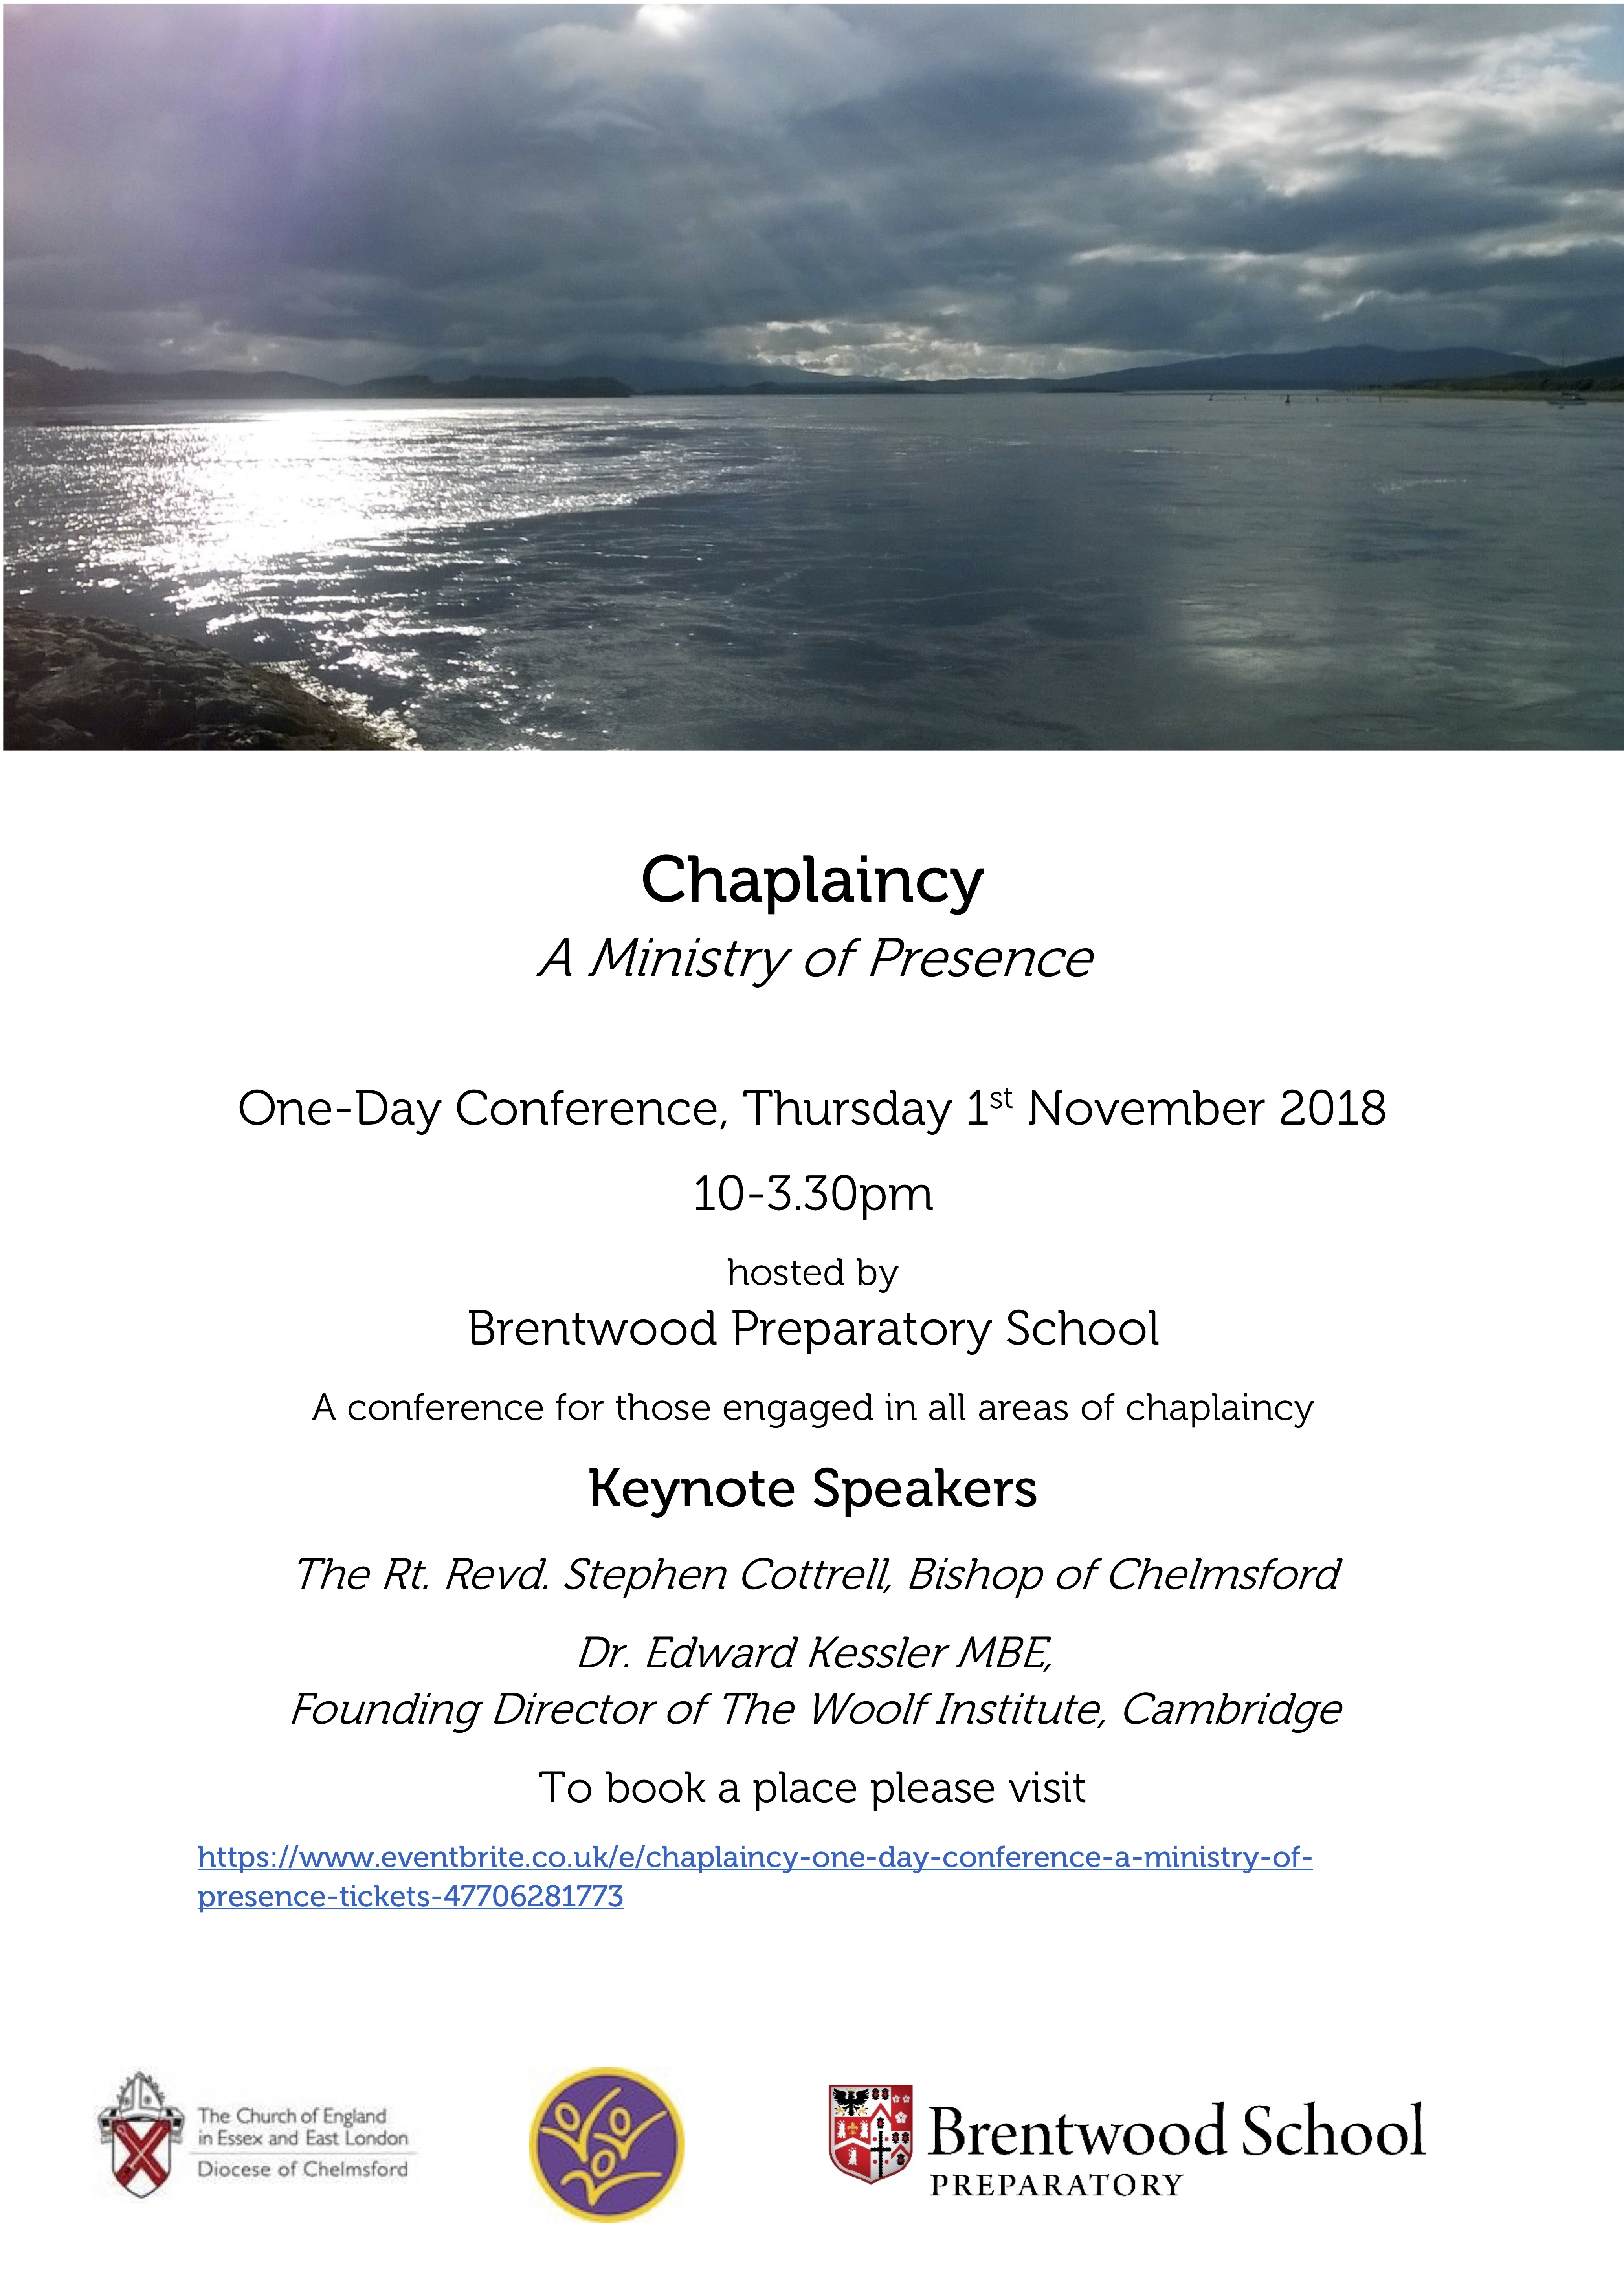 Chaplaincy One-Day Conference - A Ministry of Presence